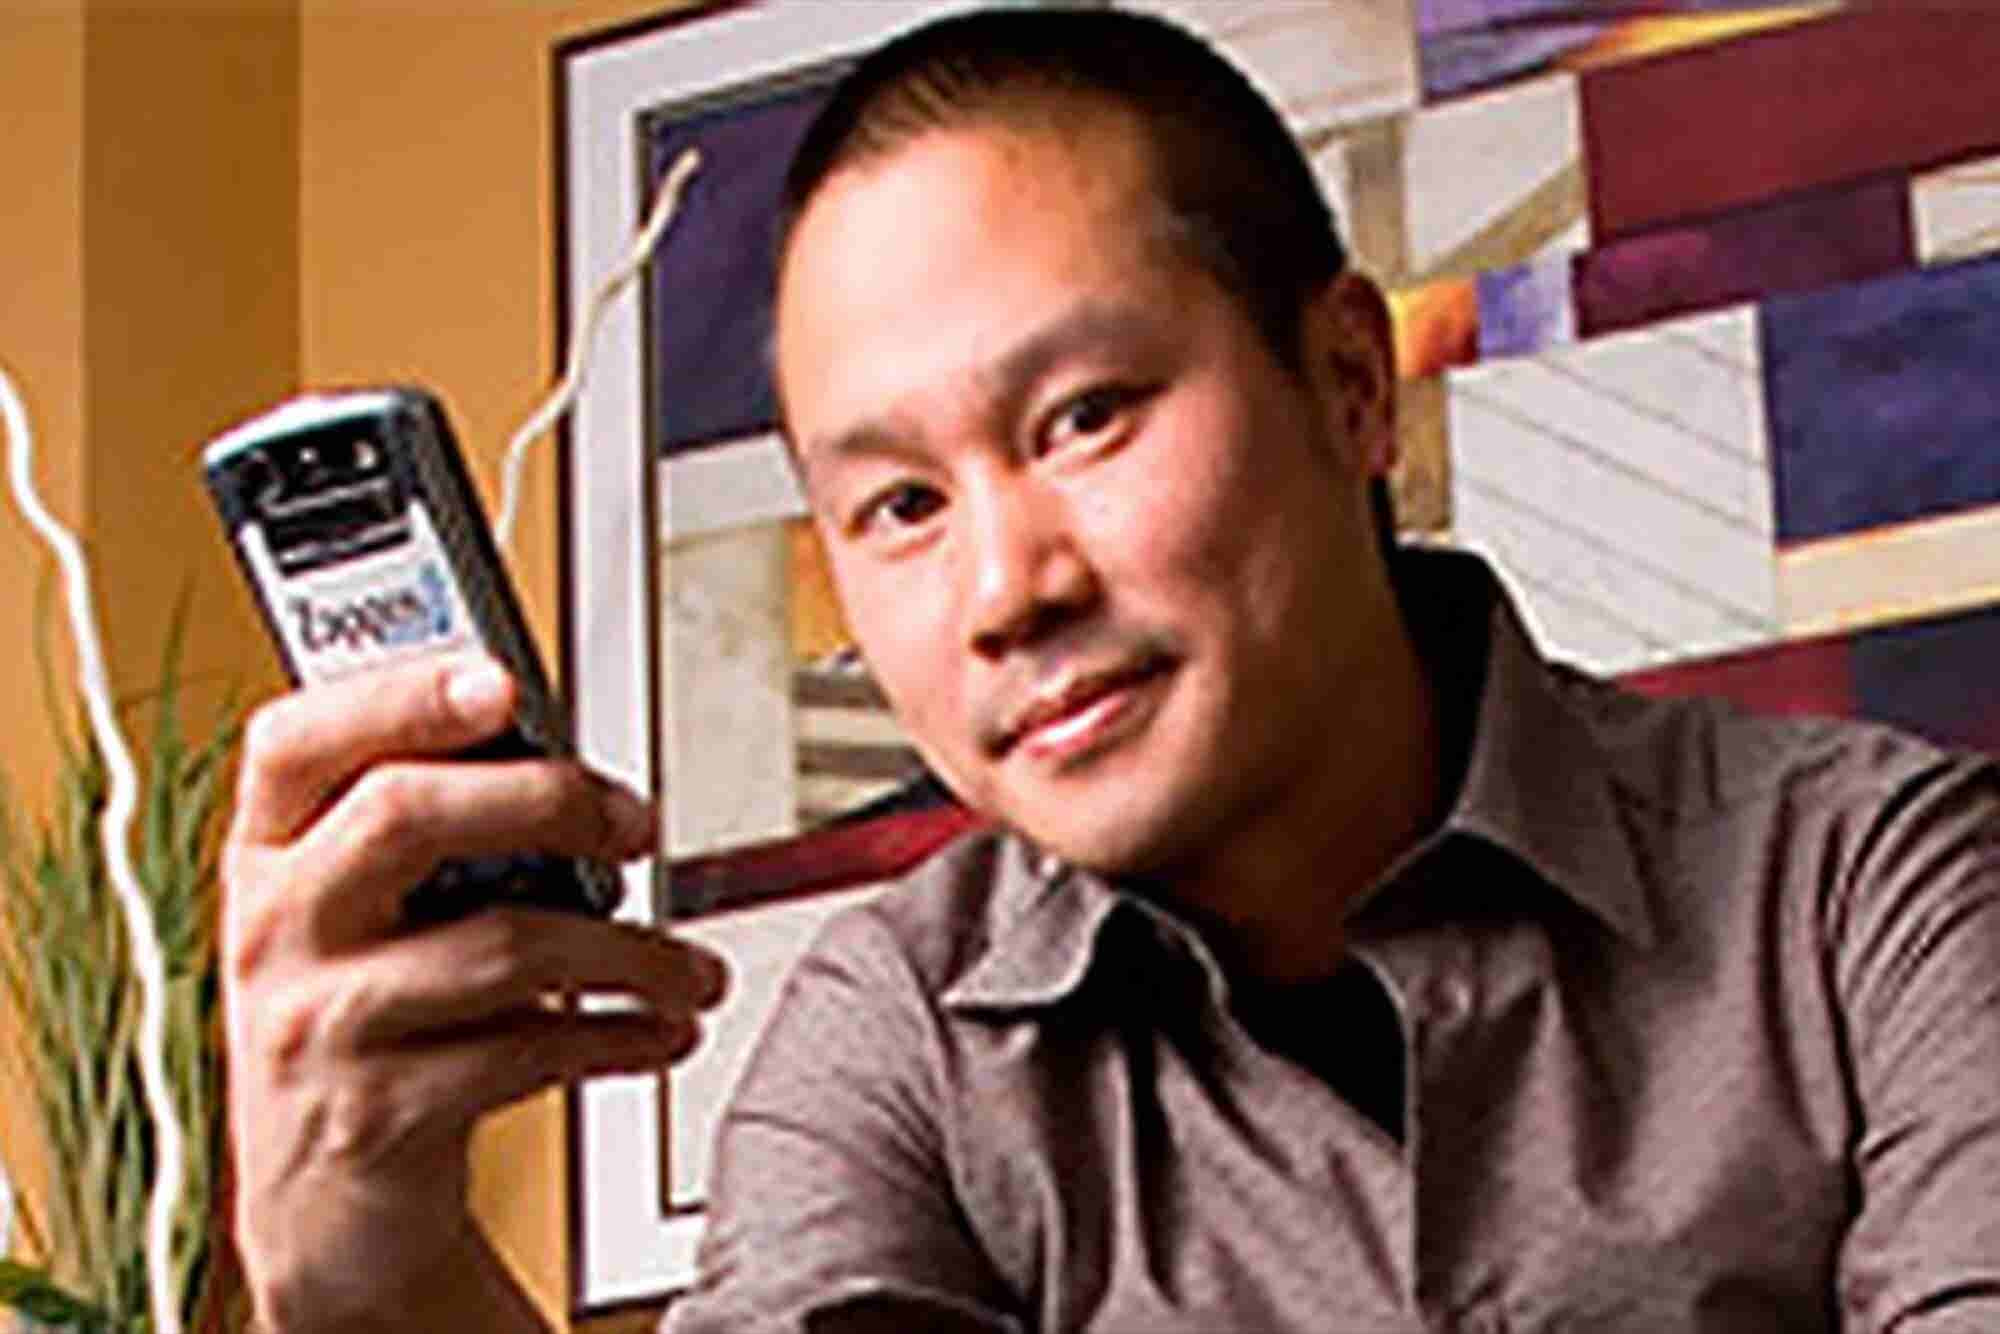 Tony Hsieh on Empowerment